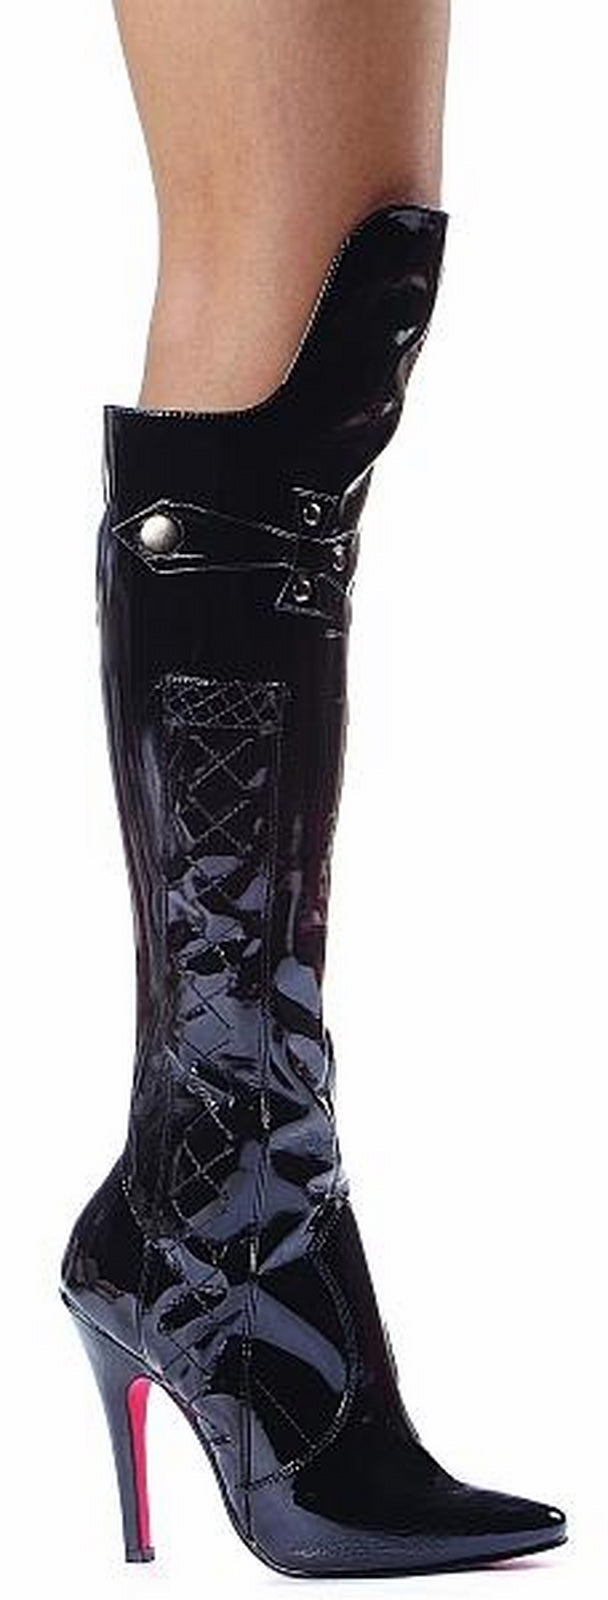 Black Costume Women Knee High Boot Whip Stiletto High Heel Ellie Shoes 511-SADIE